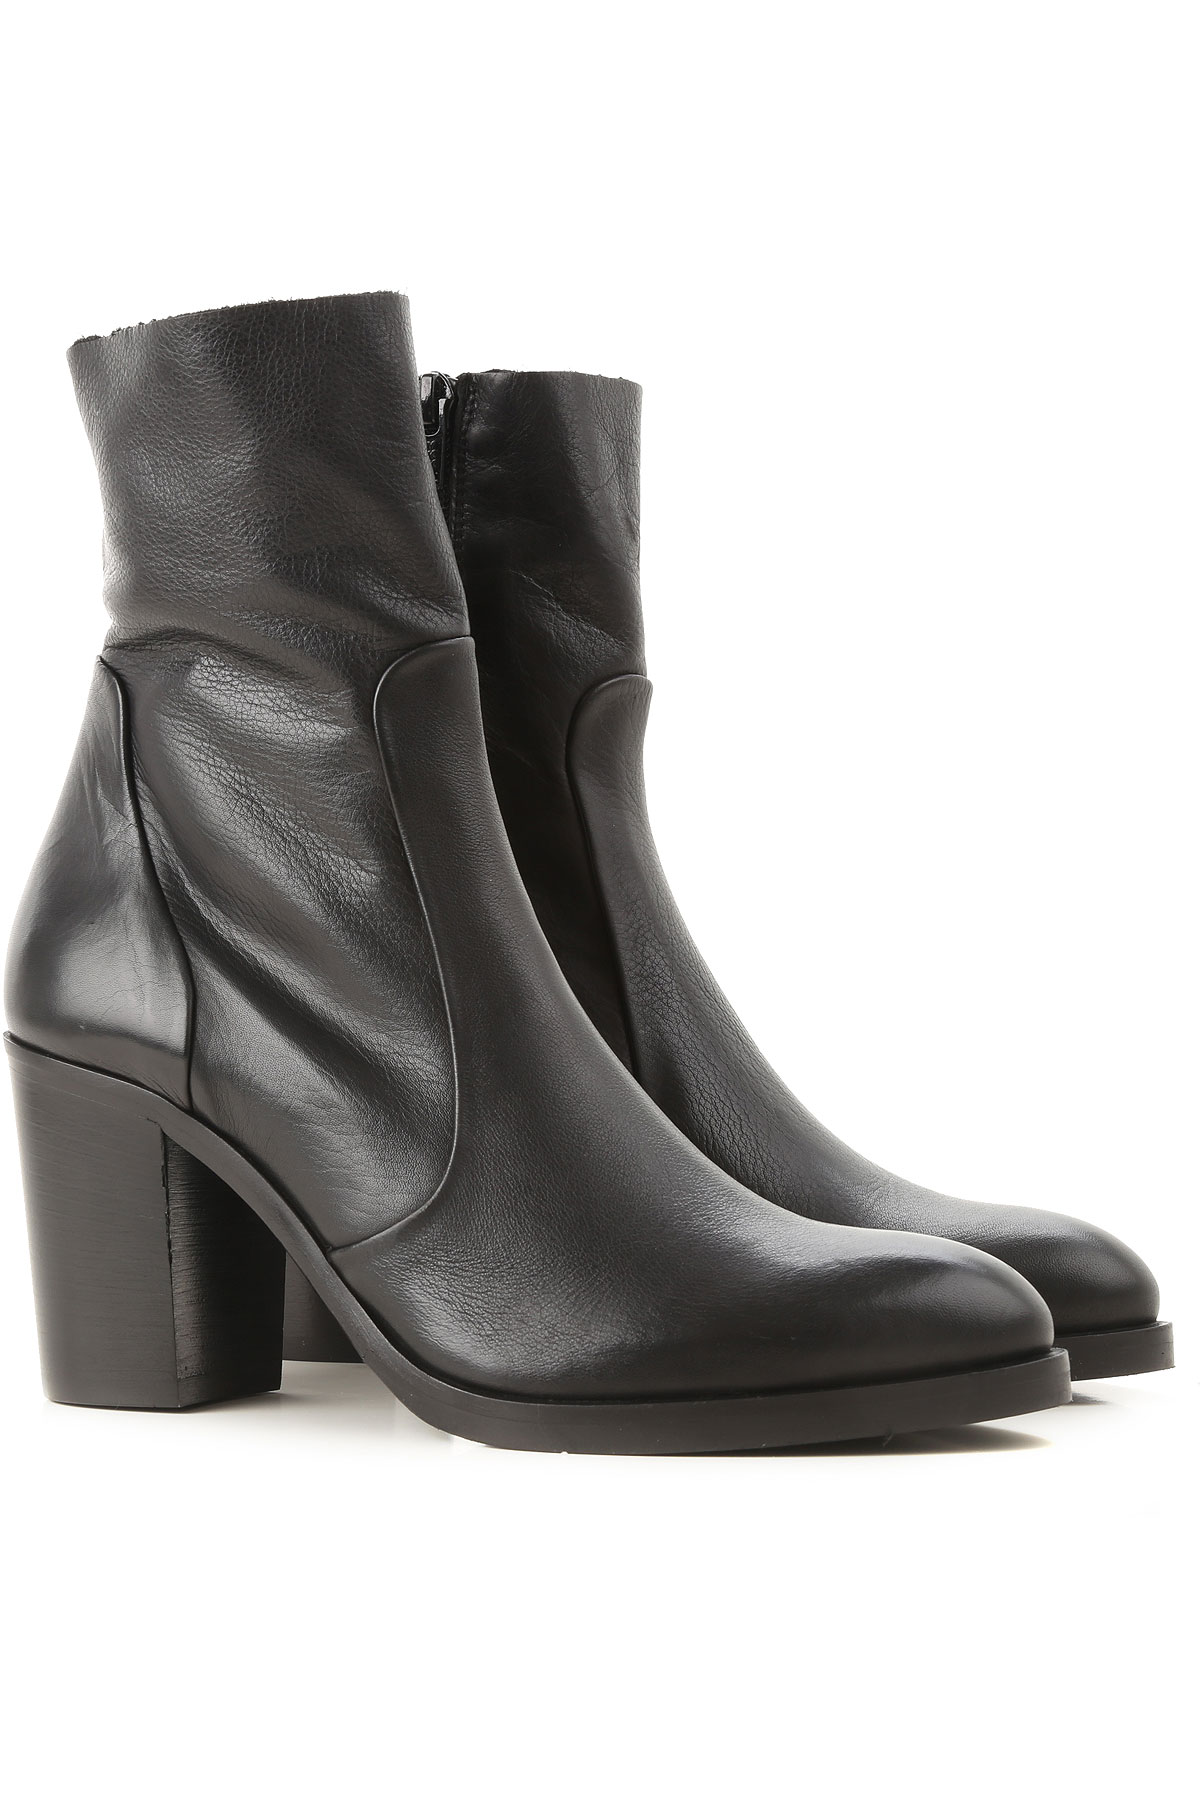 Strategia Boots for Women, Booties On Sale, Black, Leather, 2019, 10 6 7 8 9